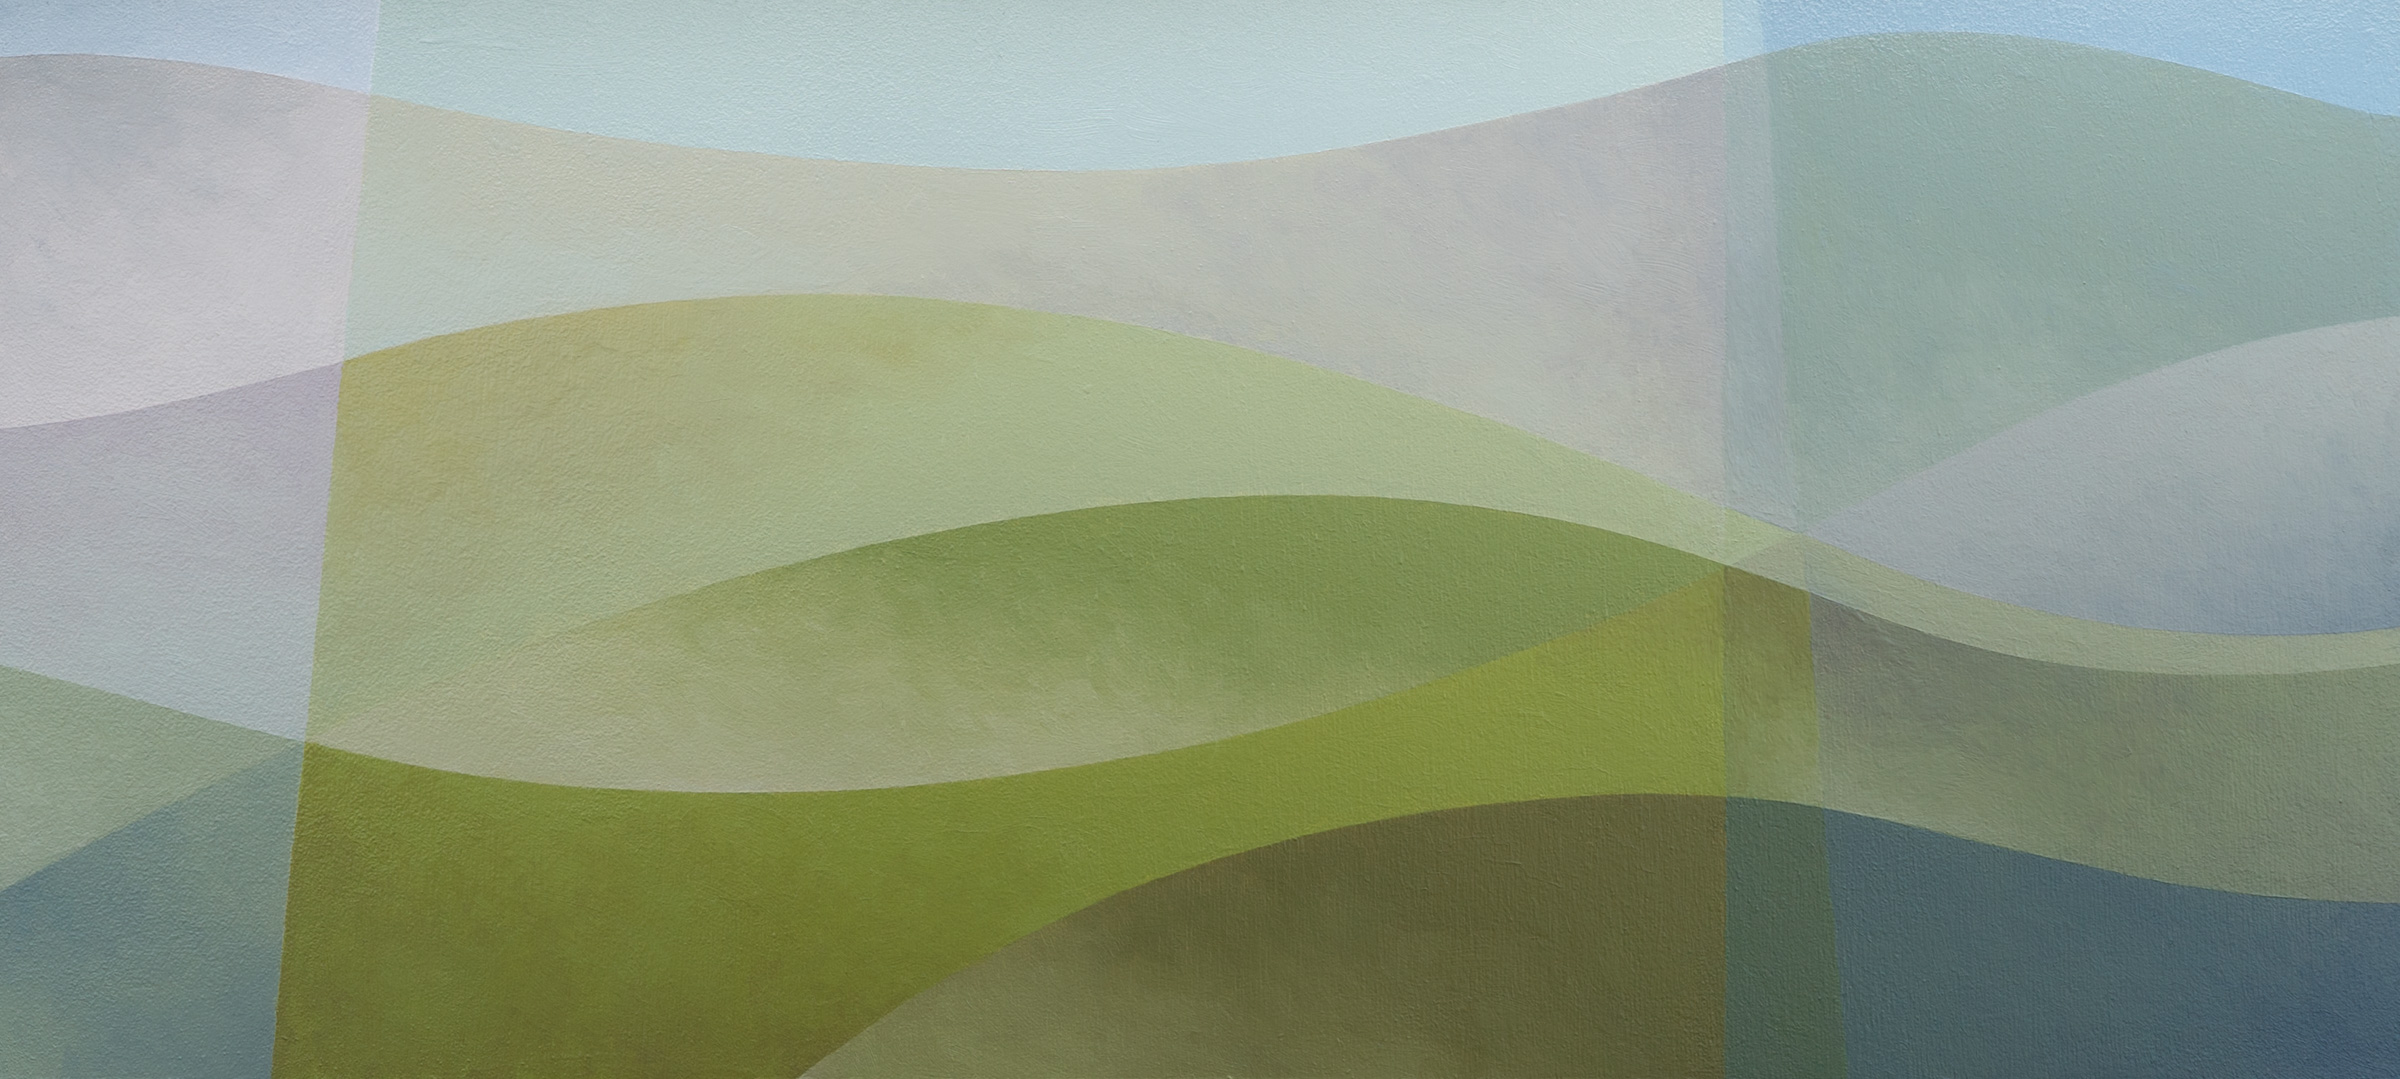 abstract landscape painting with curves in muted blues and greens